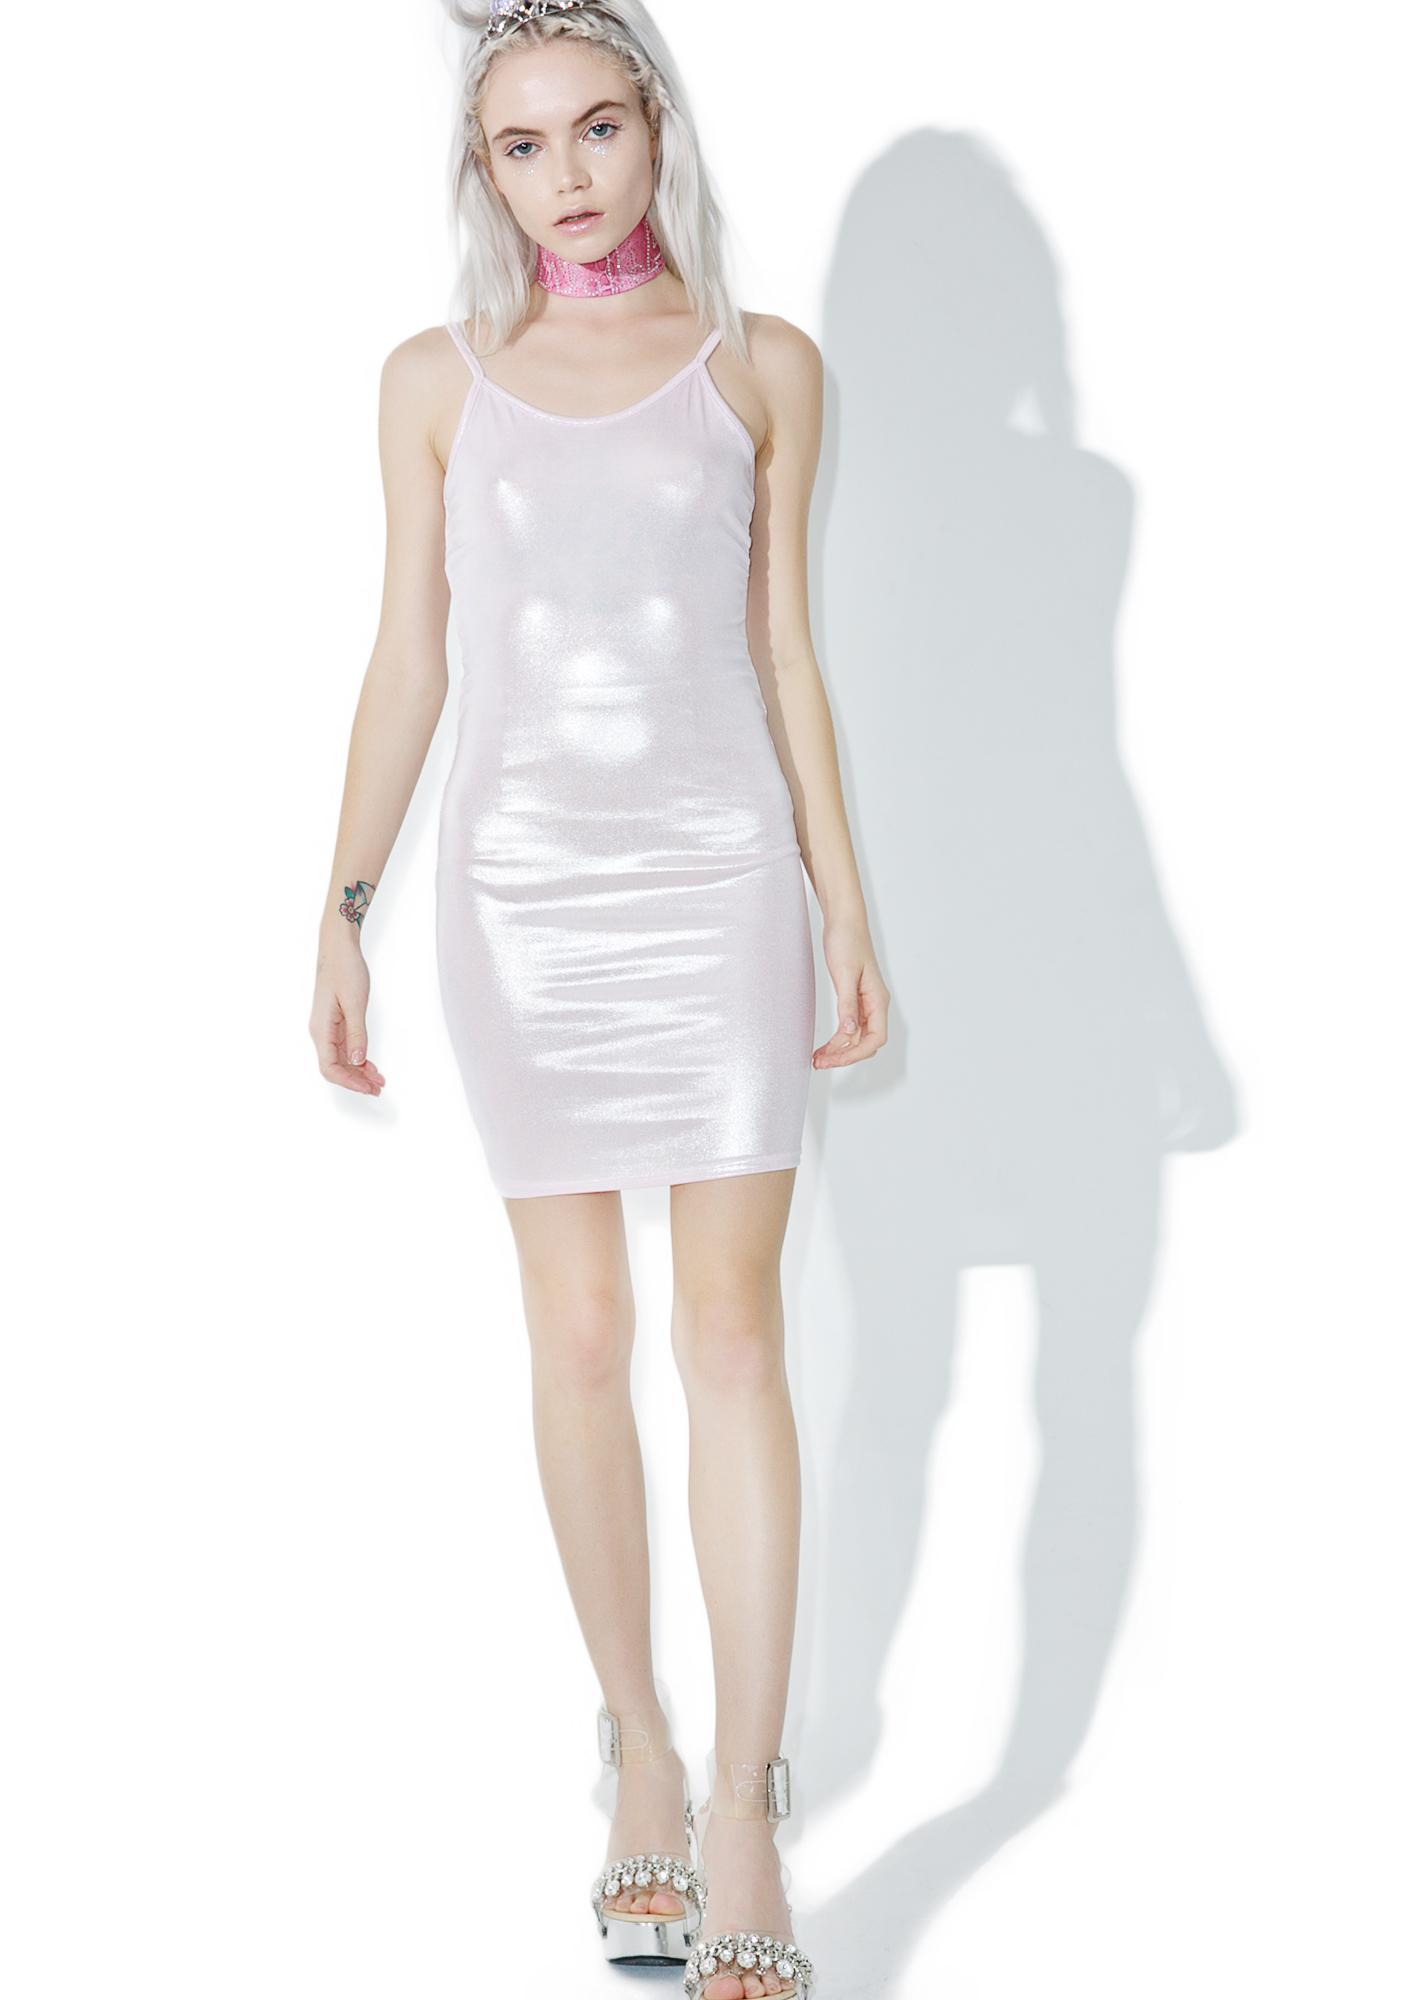 Bunny Holiday O So Slinky Mini Dress